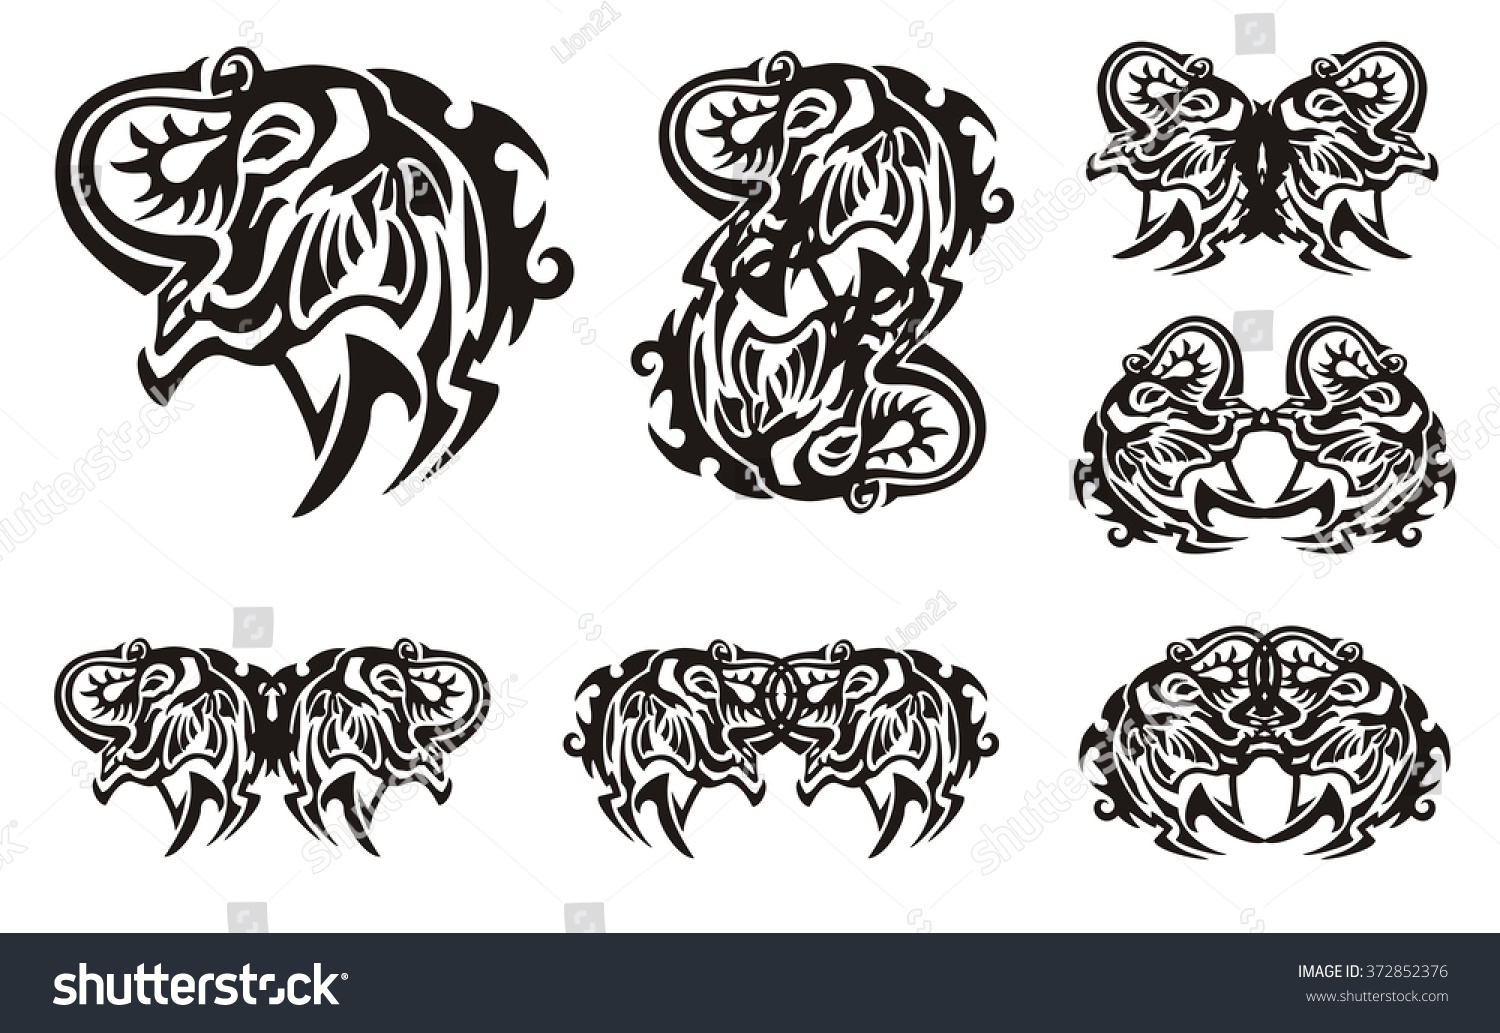 Tribal Elephant Head Symbols Muzzle Elephant Stock Vector Royalty